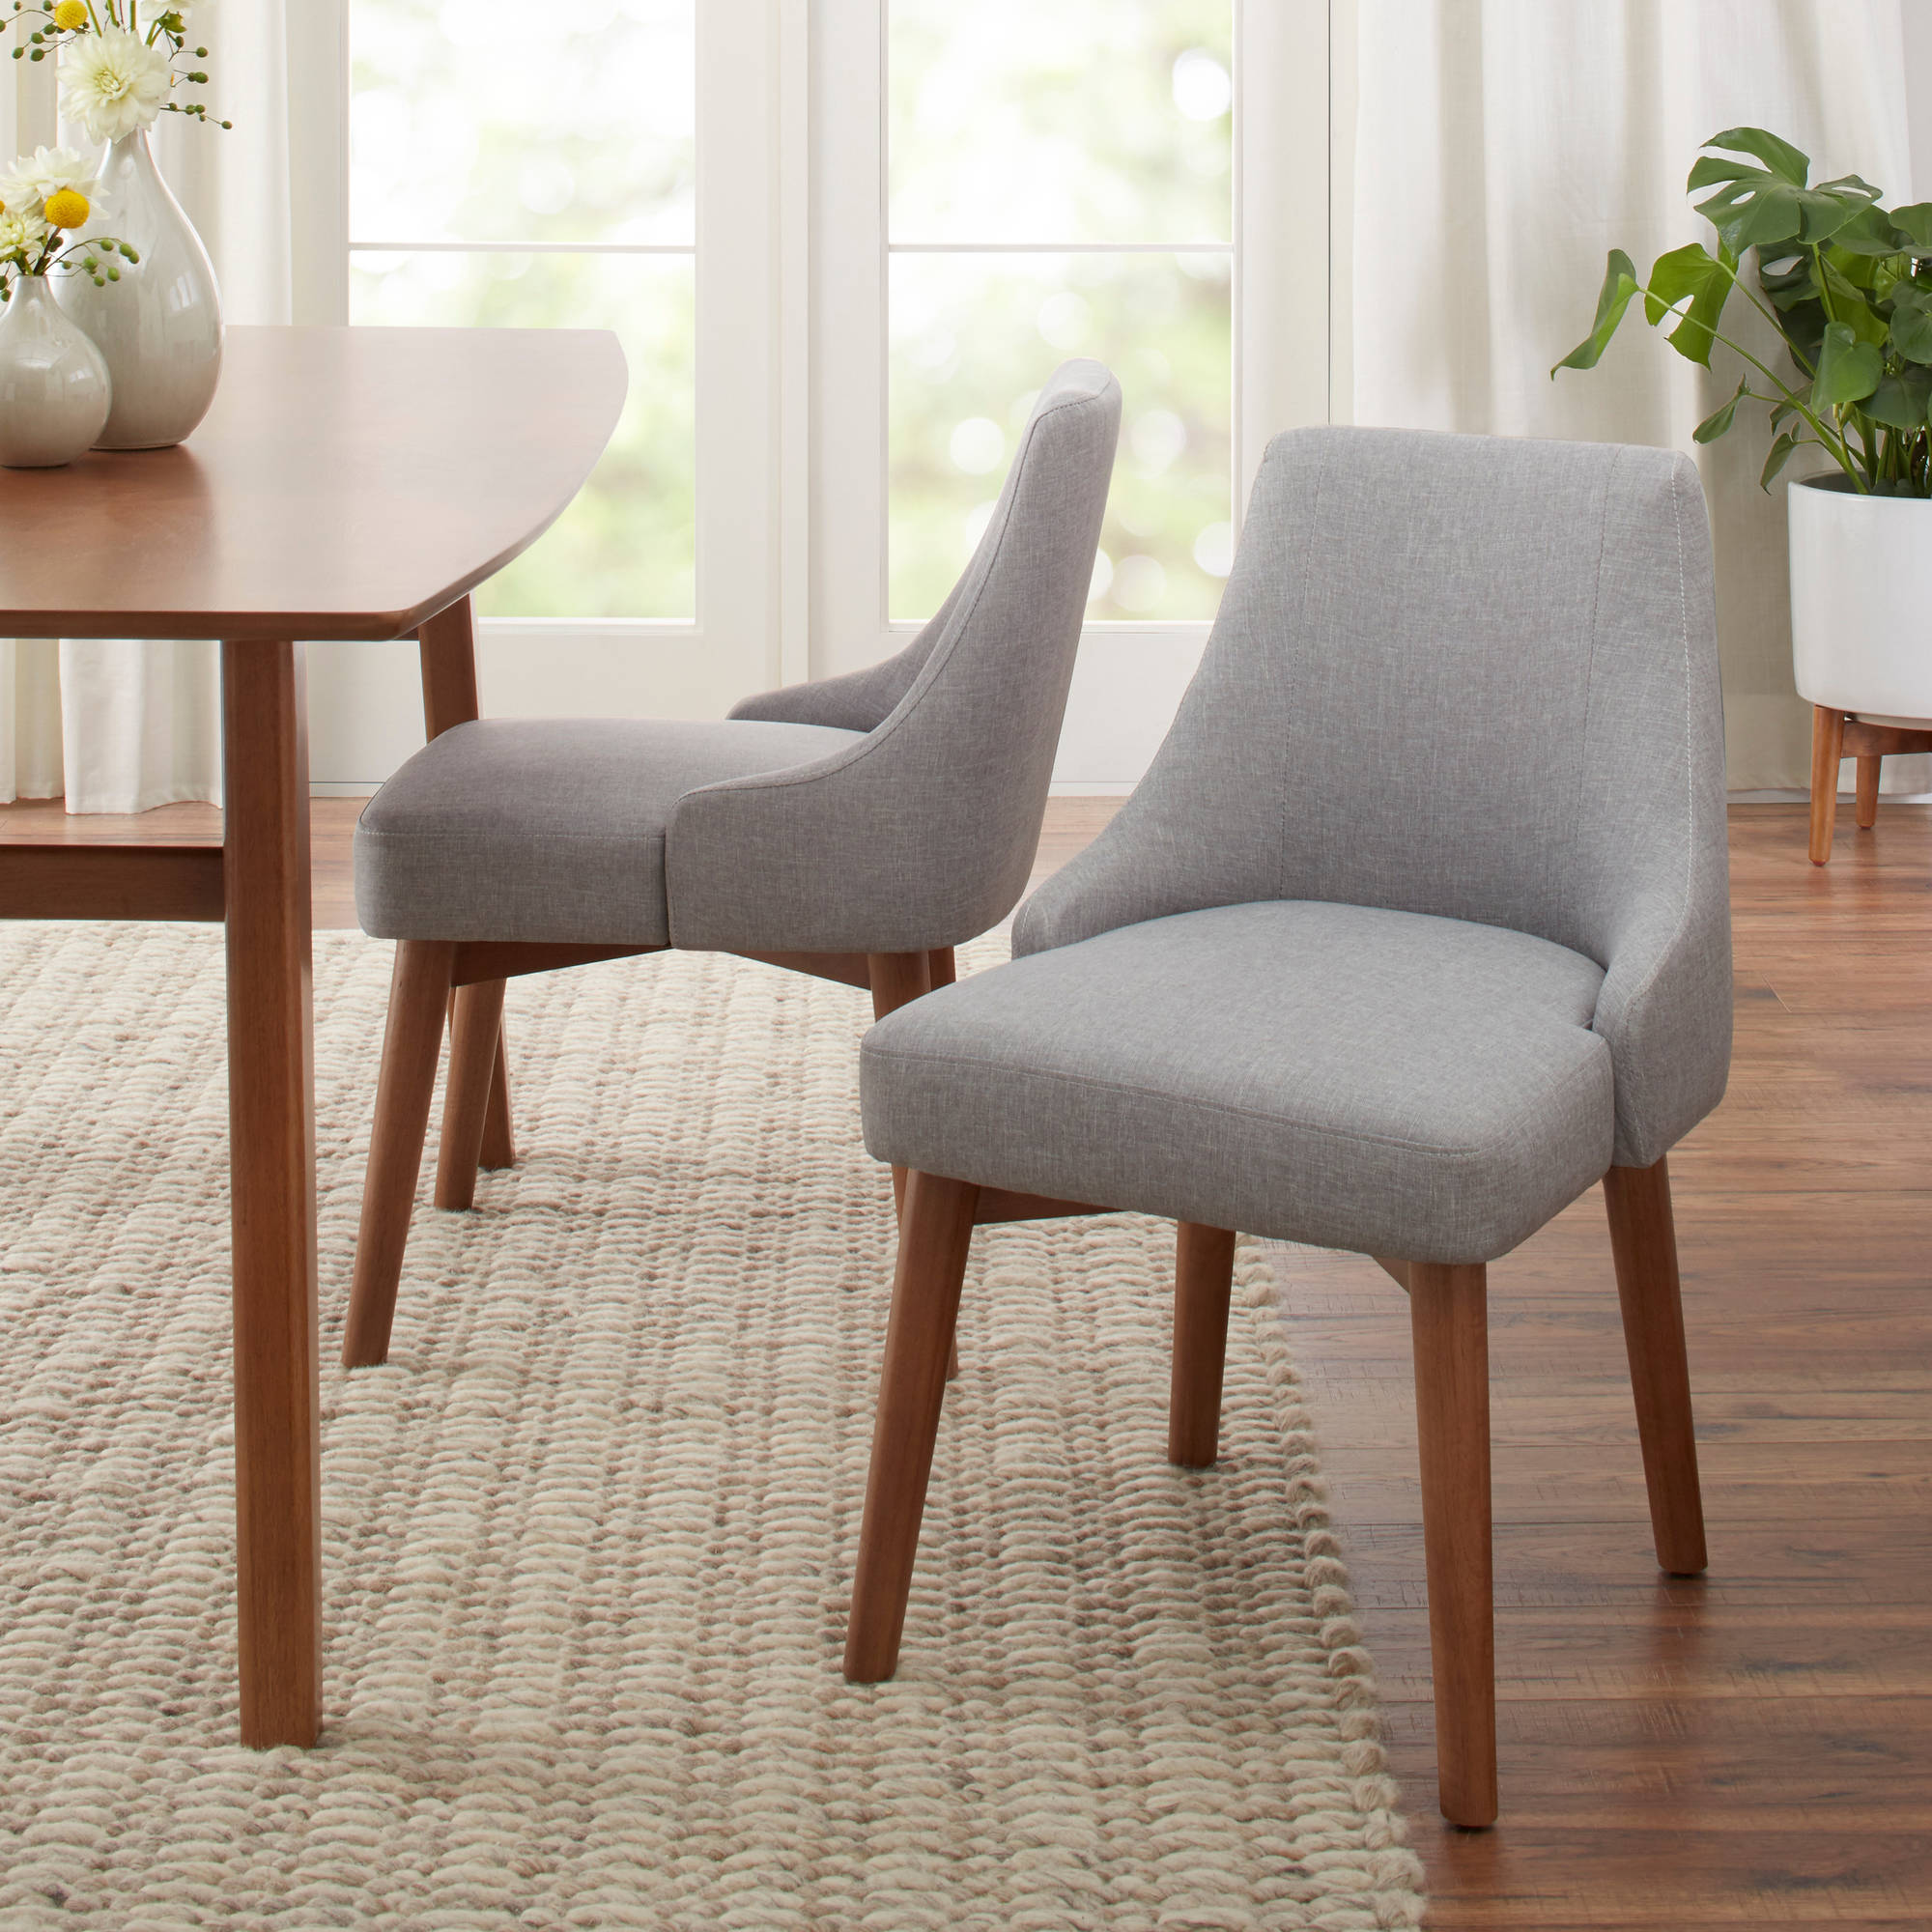 Better Homes And Gardens Reed Mid Century Modern Dining Chair, Set Of 2,  Smoke